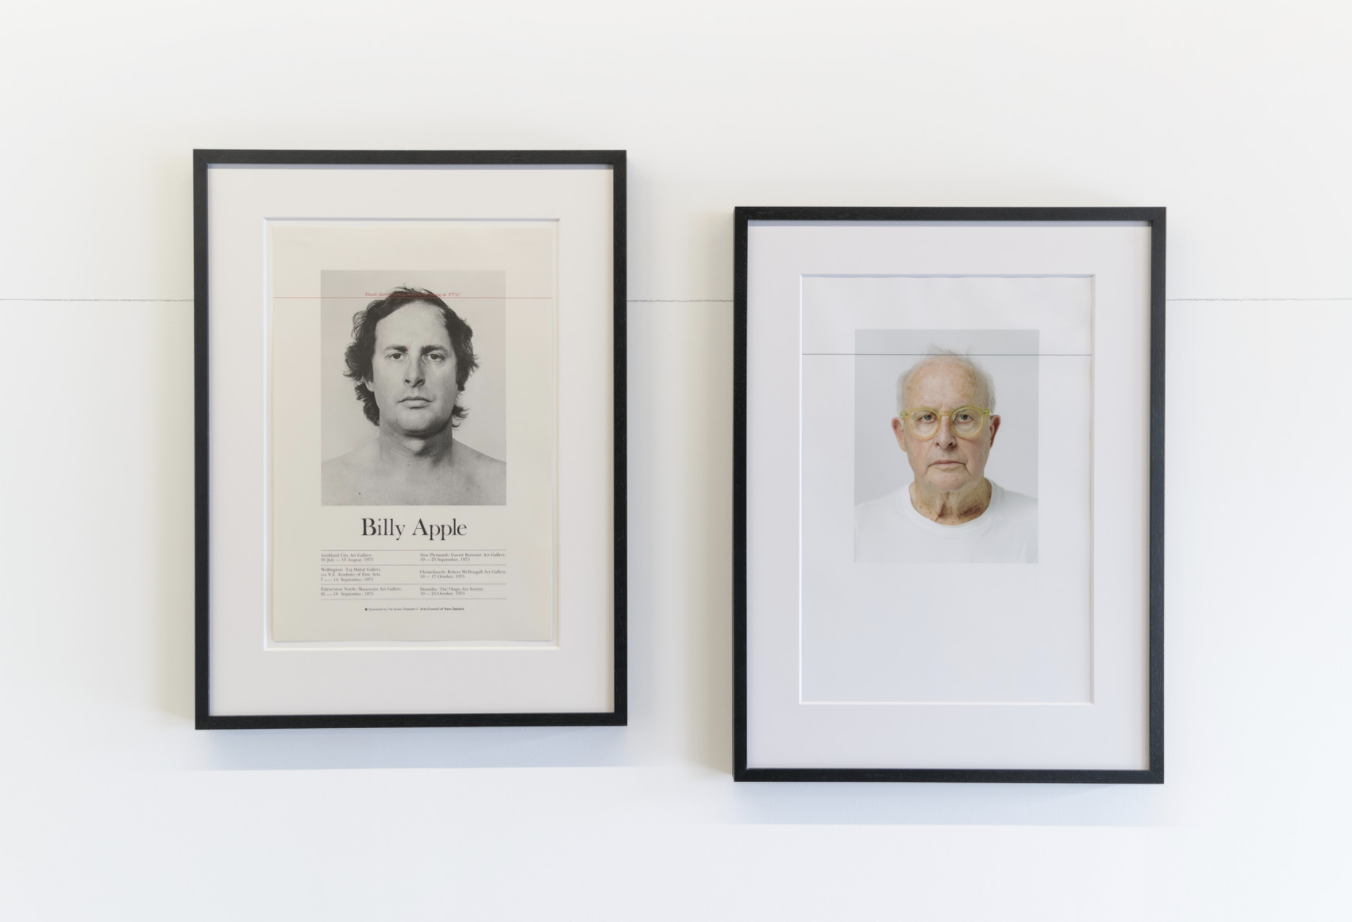 Head Height 2, 3 & 4, Billy Apple, 1975/2020. Image courtesy of the artist and Hamish McKay